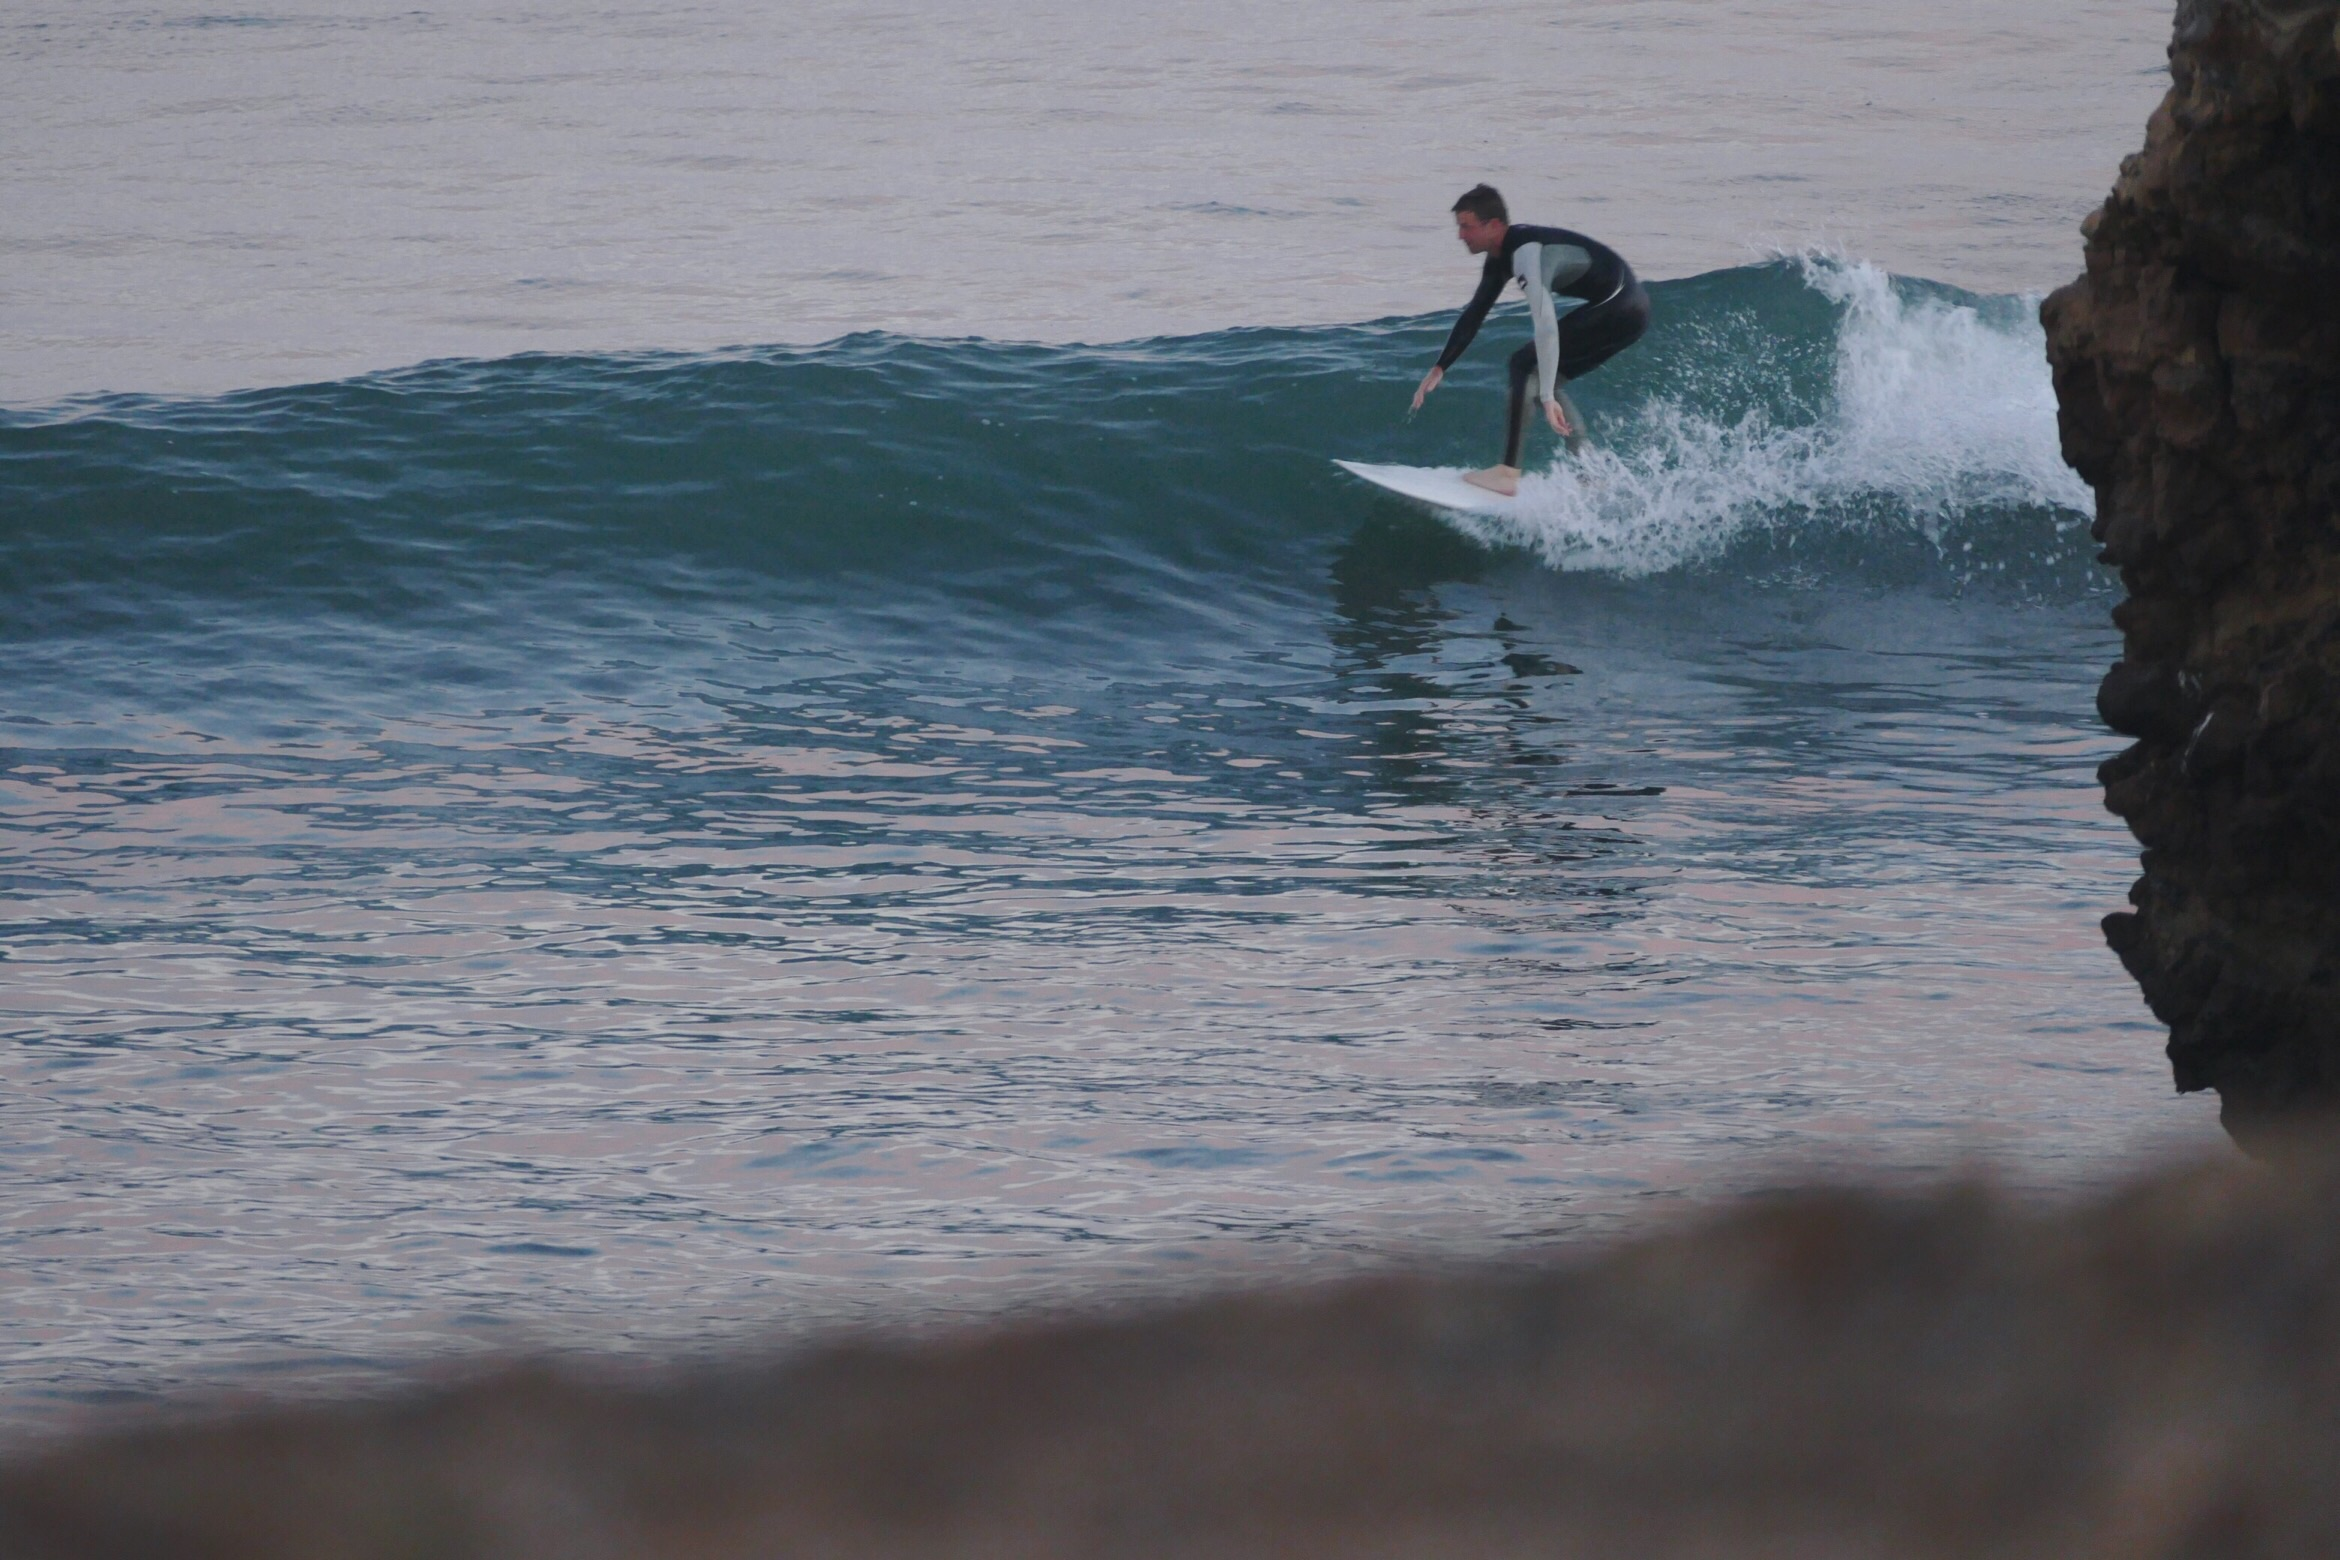 Corey Menzies photo. Corey subsidizes a portion of his surf travel by selling photos out of his van.